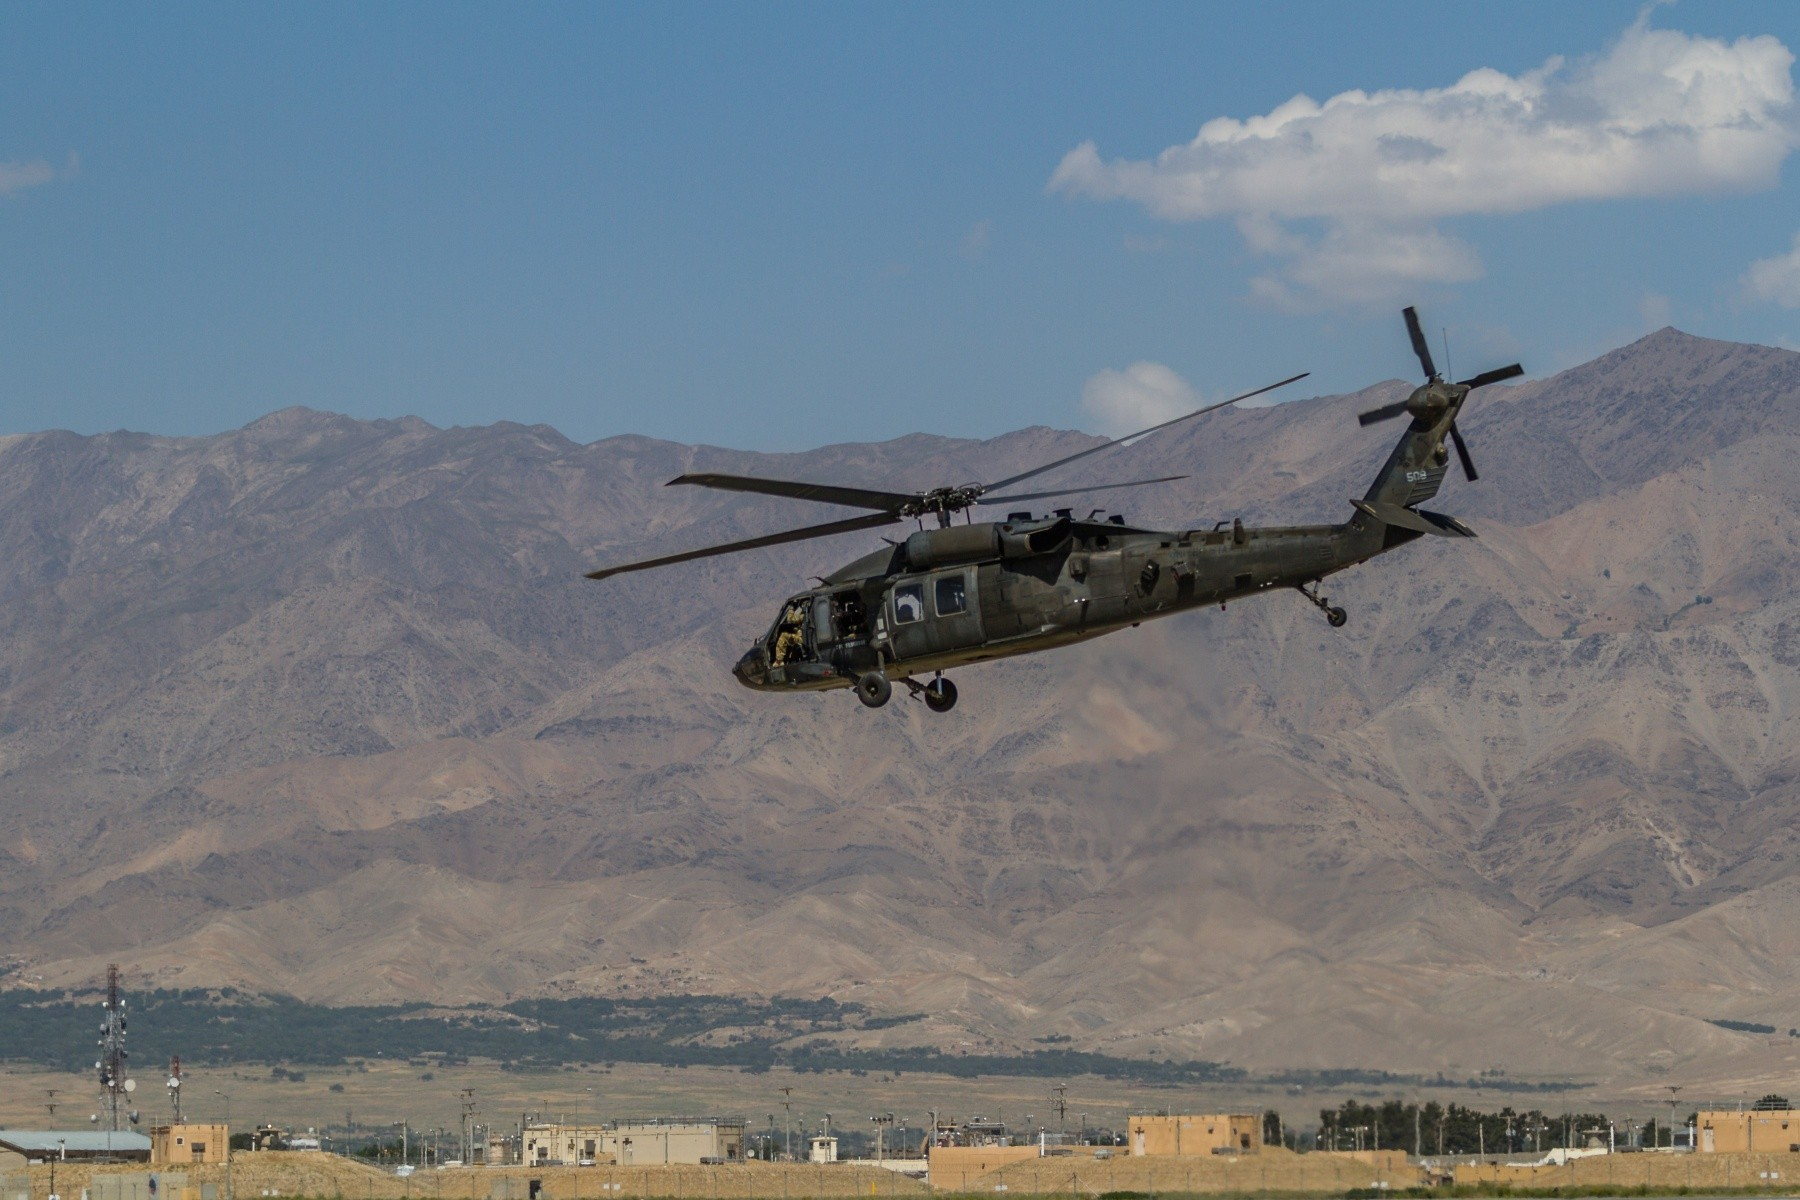 photo essay task force flying dragons at bagram airfield brian harris view original